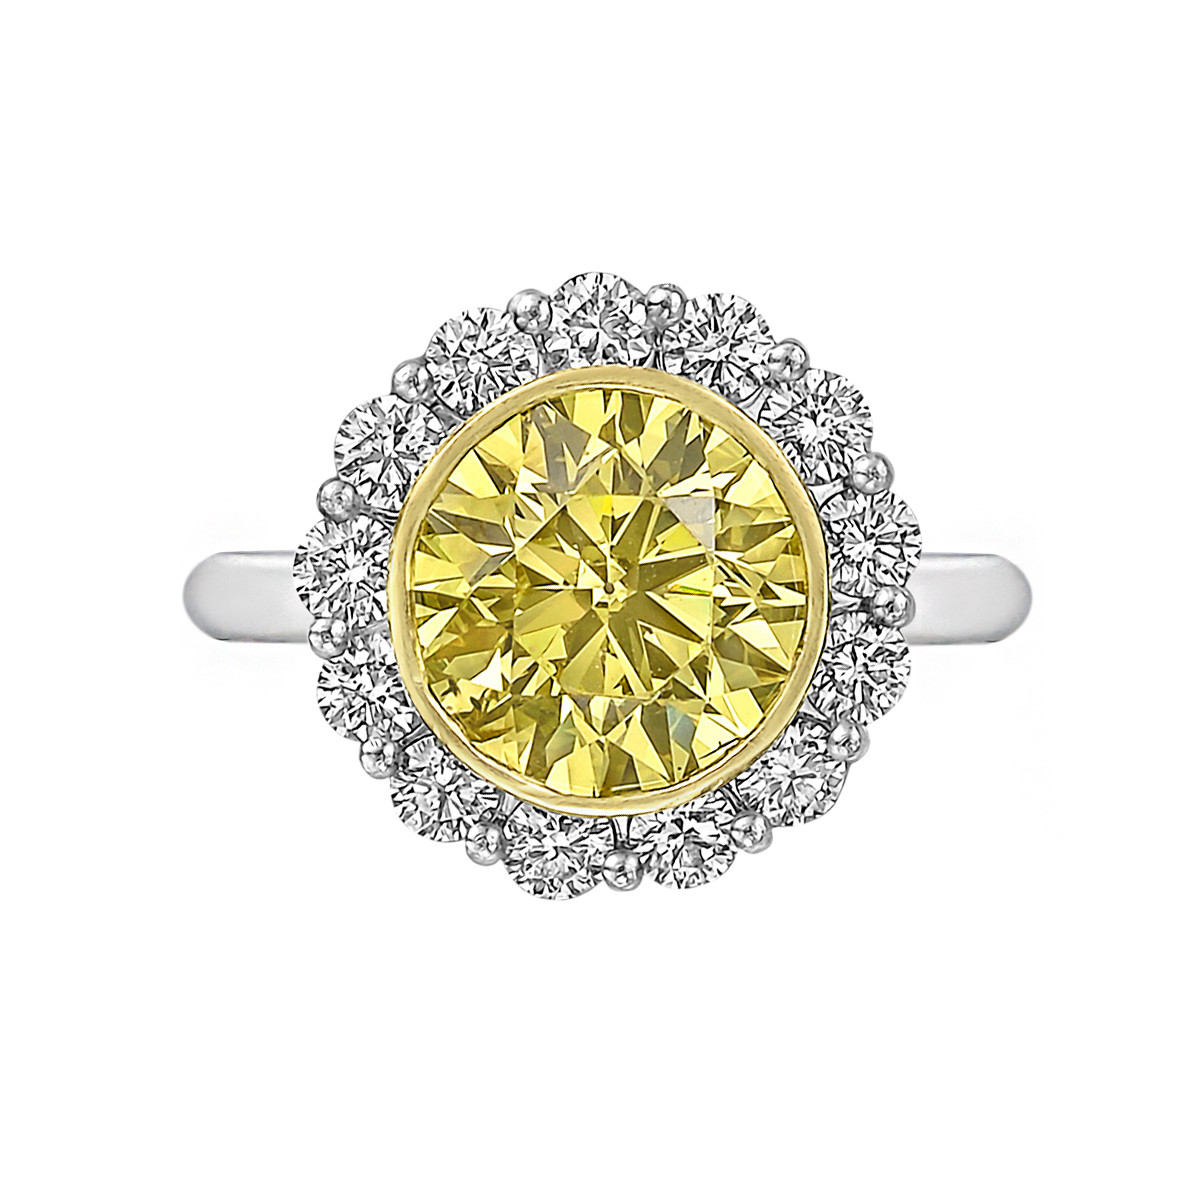 3.52ct Fancy Intense Yellow Diamond Ring (SI2)